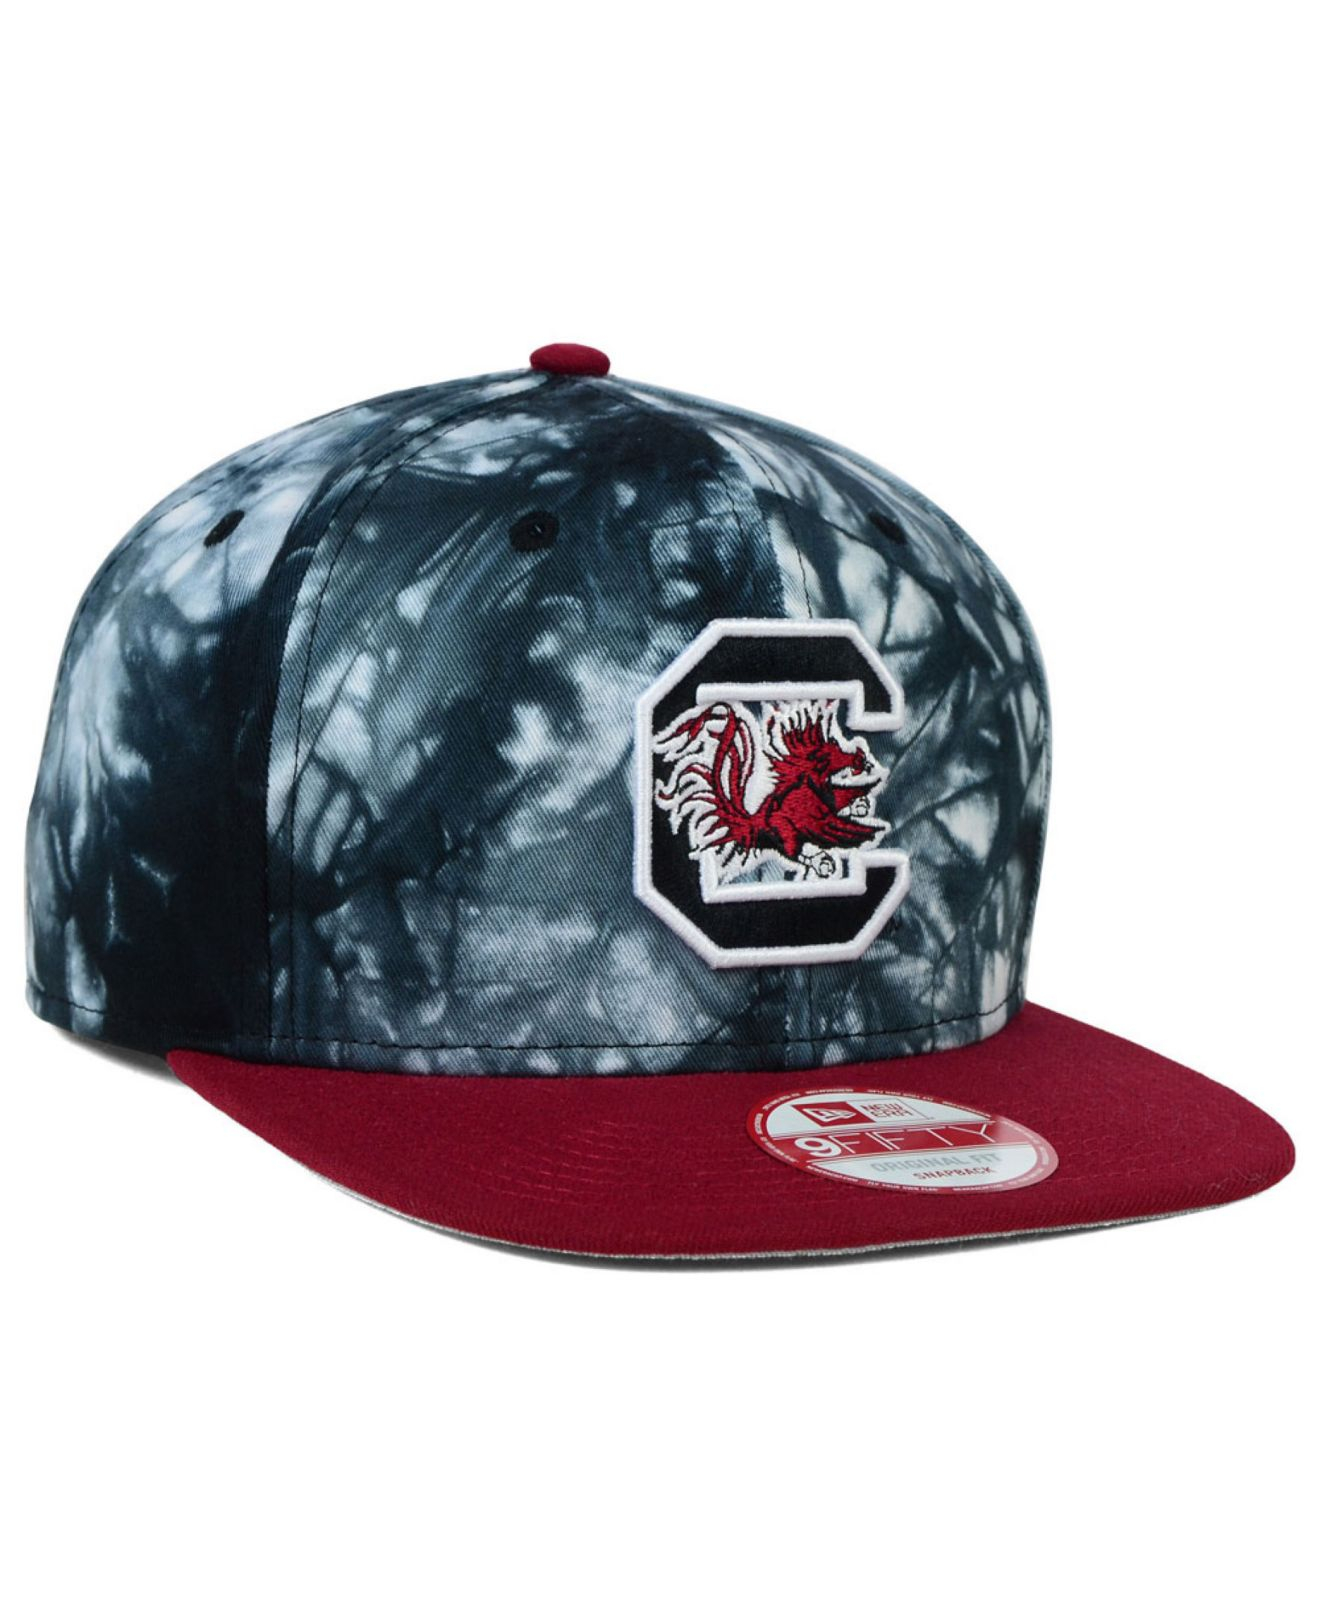 Lyst - Ktz South Carolina Gamecocks Overcast 9fifty Snapback Cap in ... 5f736ca25dec